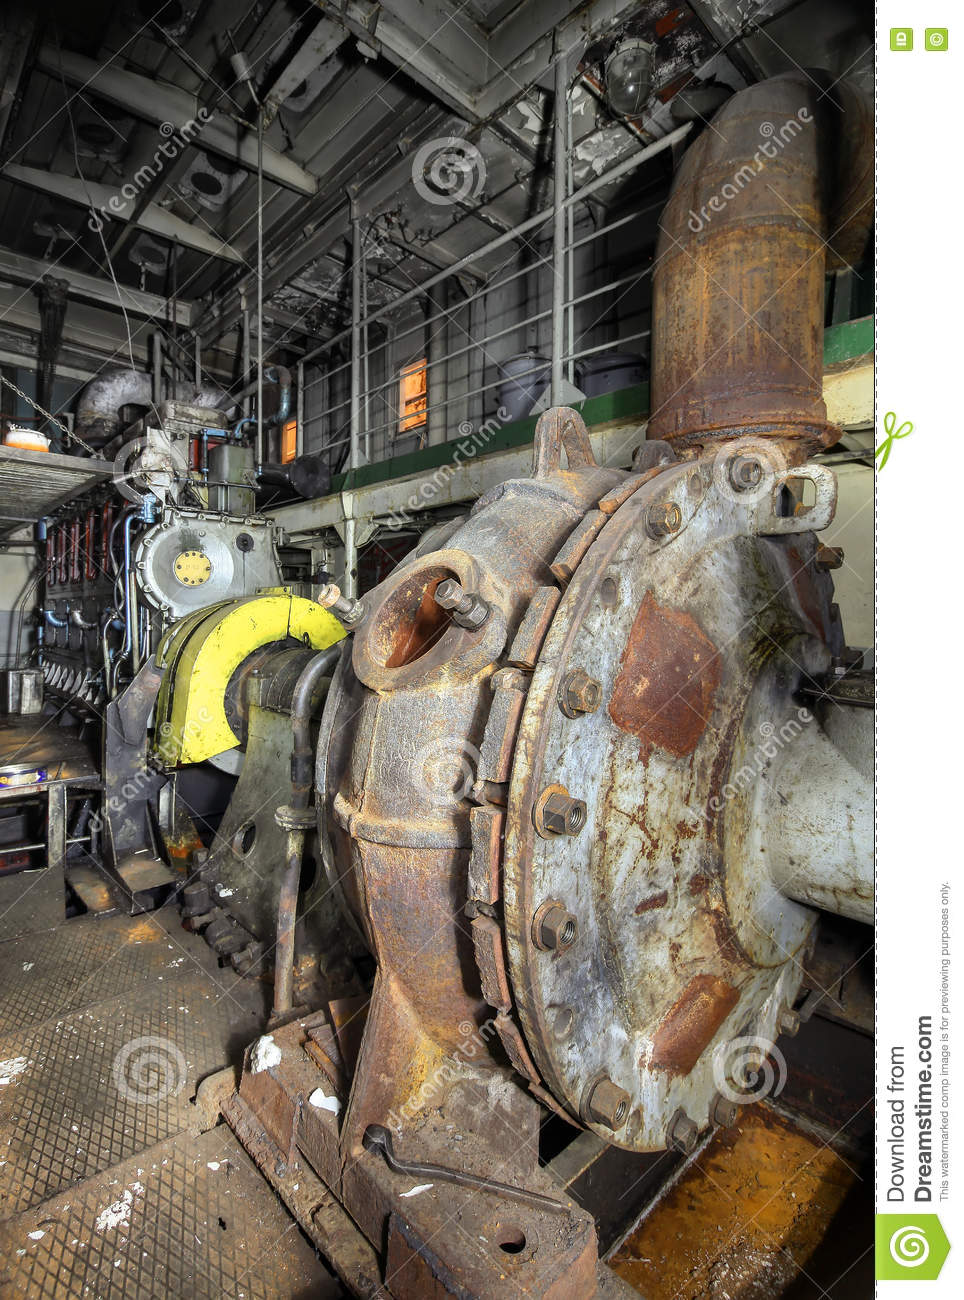 Boat Engine Room: The Ship's Hold With Diesel Engine Mounted On Ship Stock